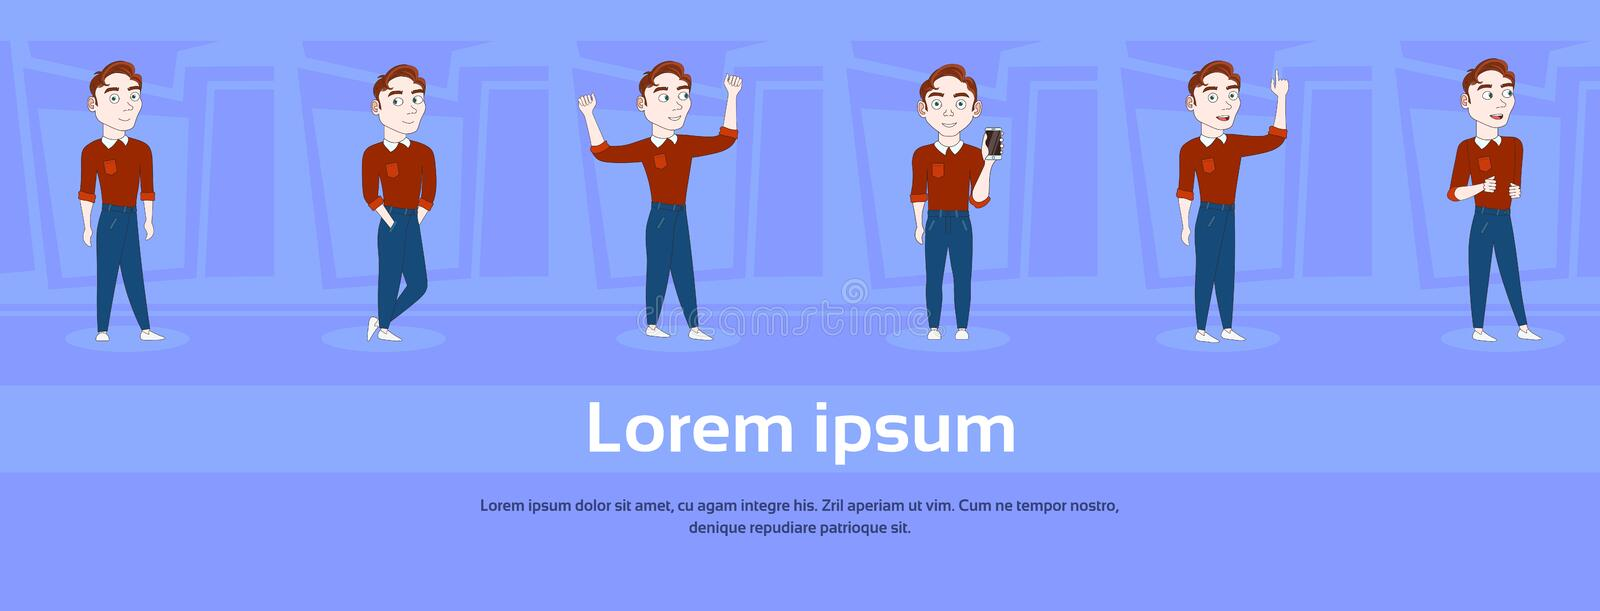 Set Of Cartoon Man In Casual Clothes In Different Poses Over Abstract Blue Background With Copy Space royalty free illustration